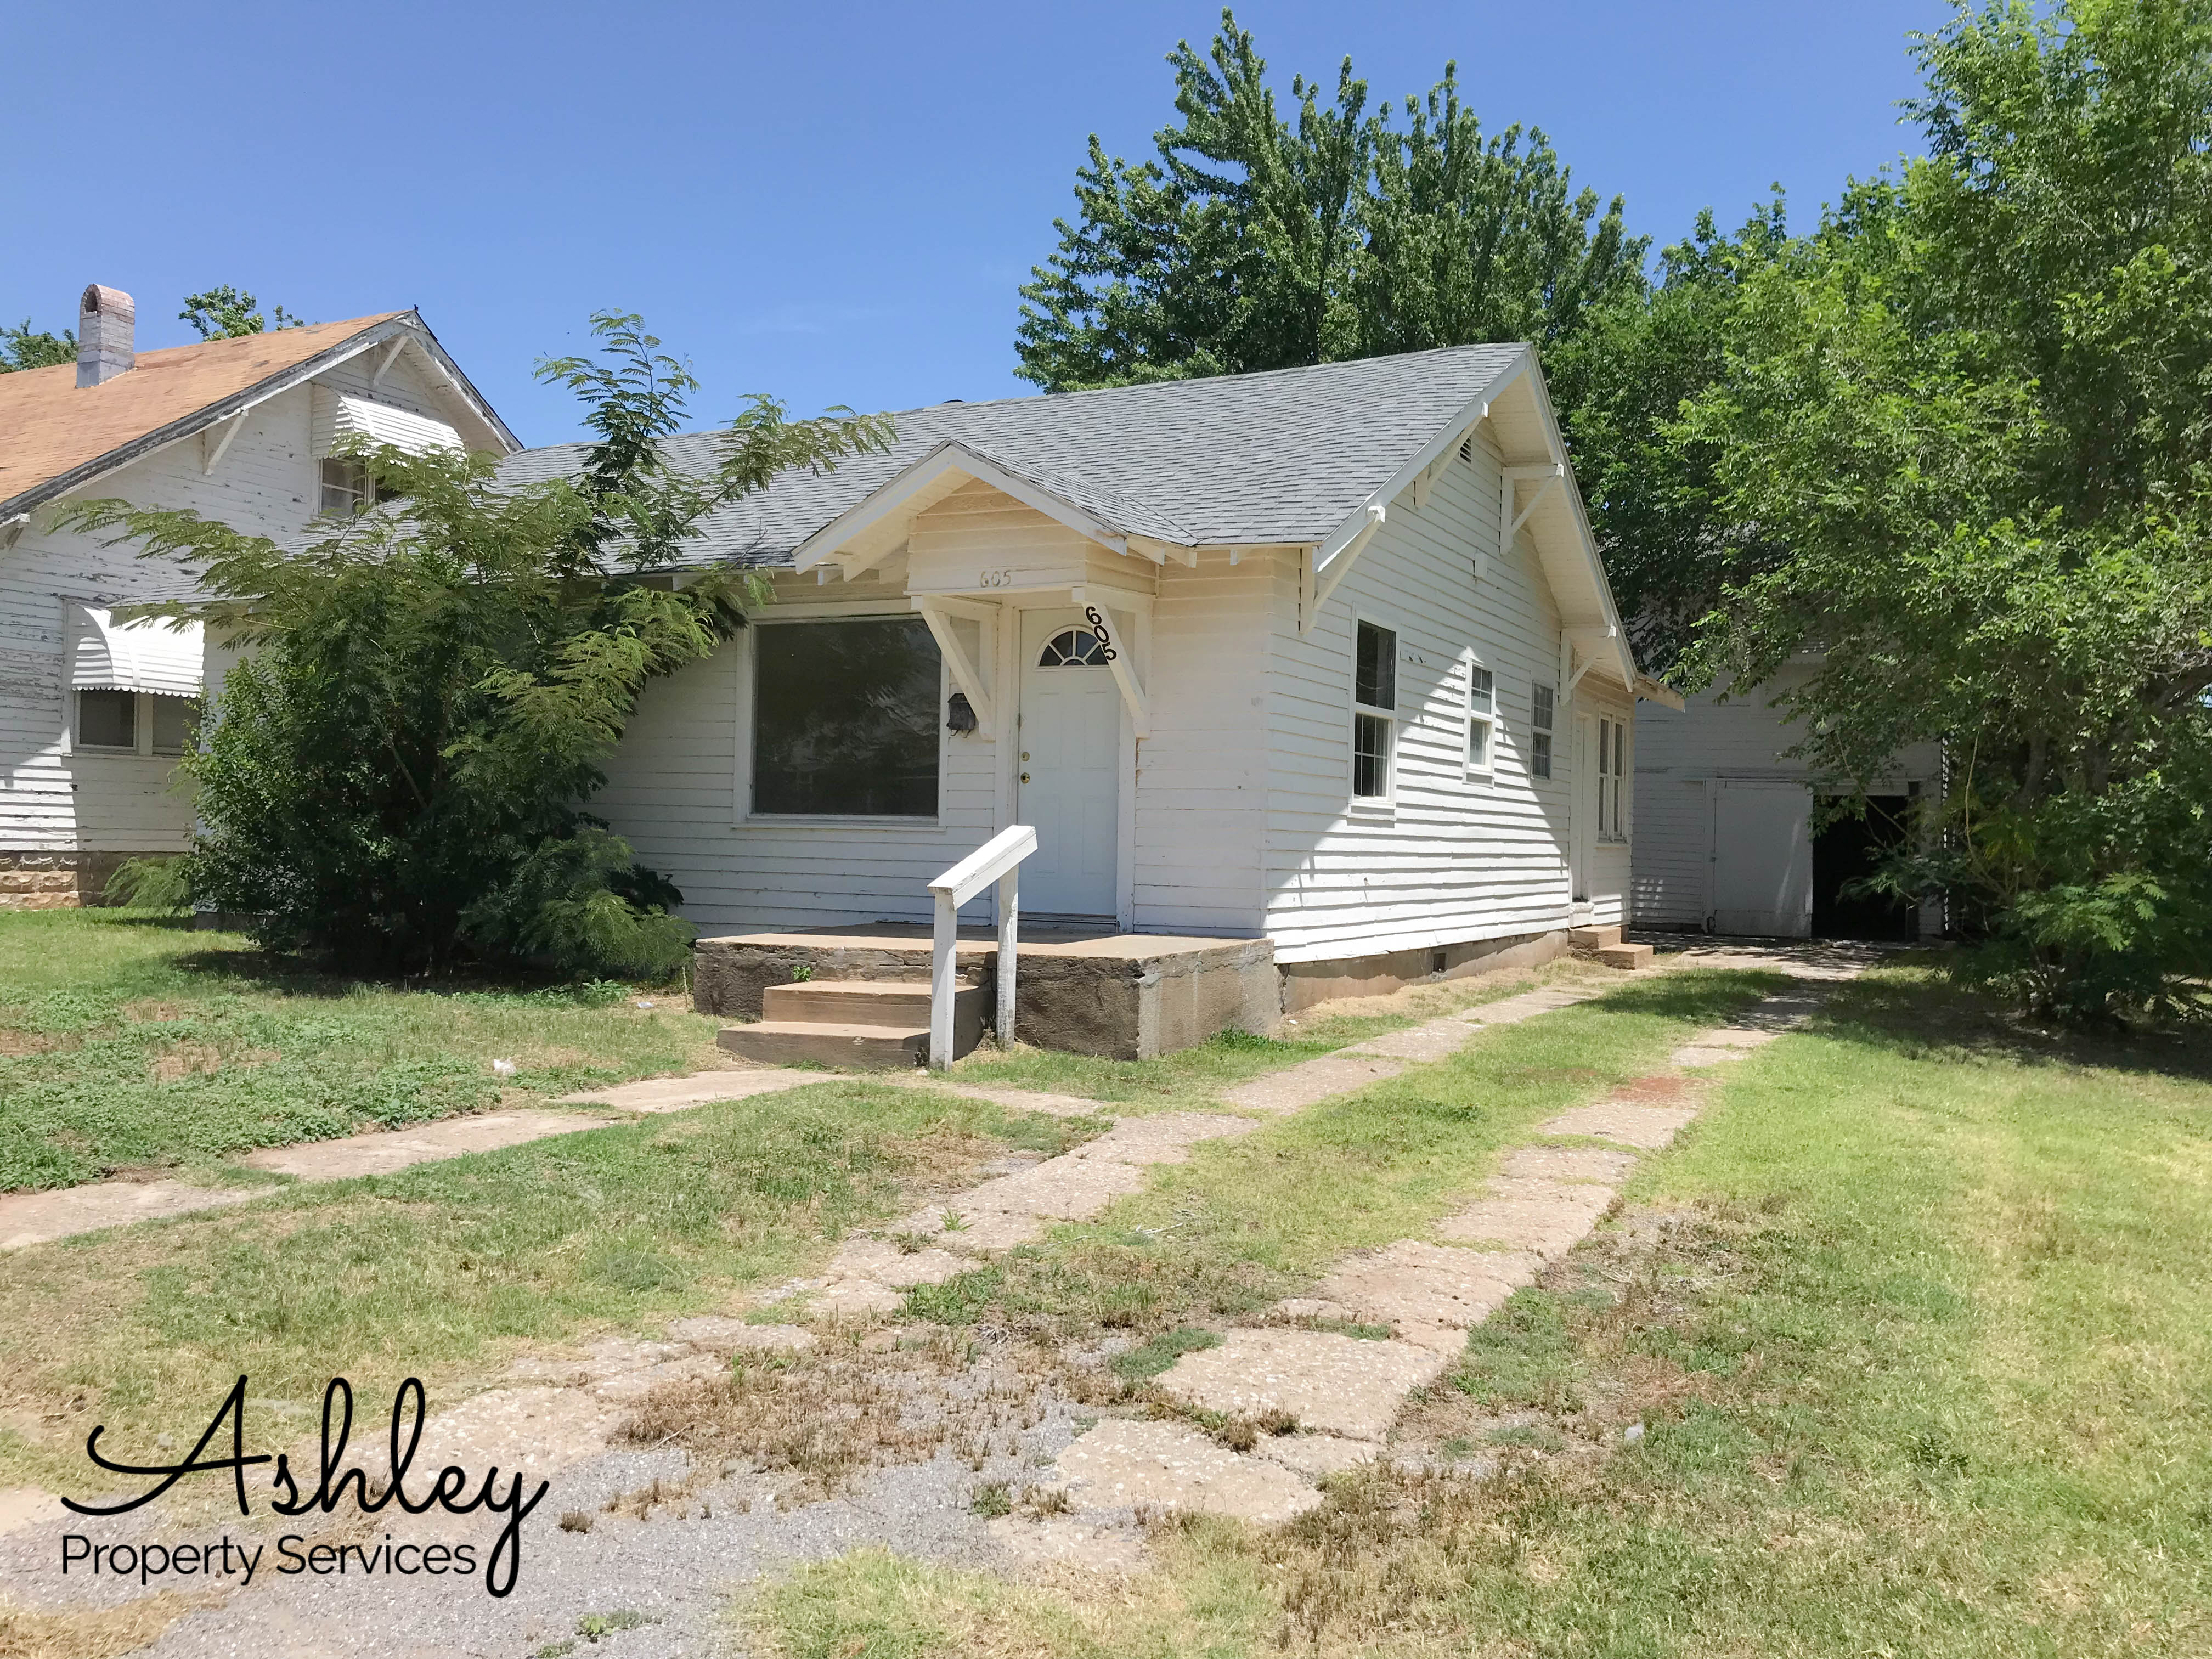 605 N 6th Enid, OK